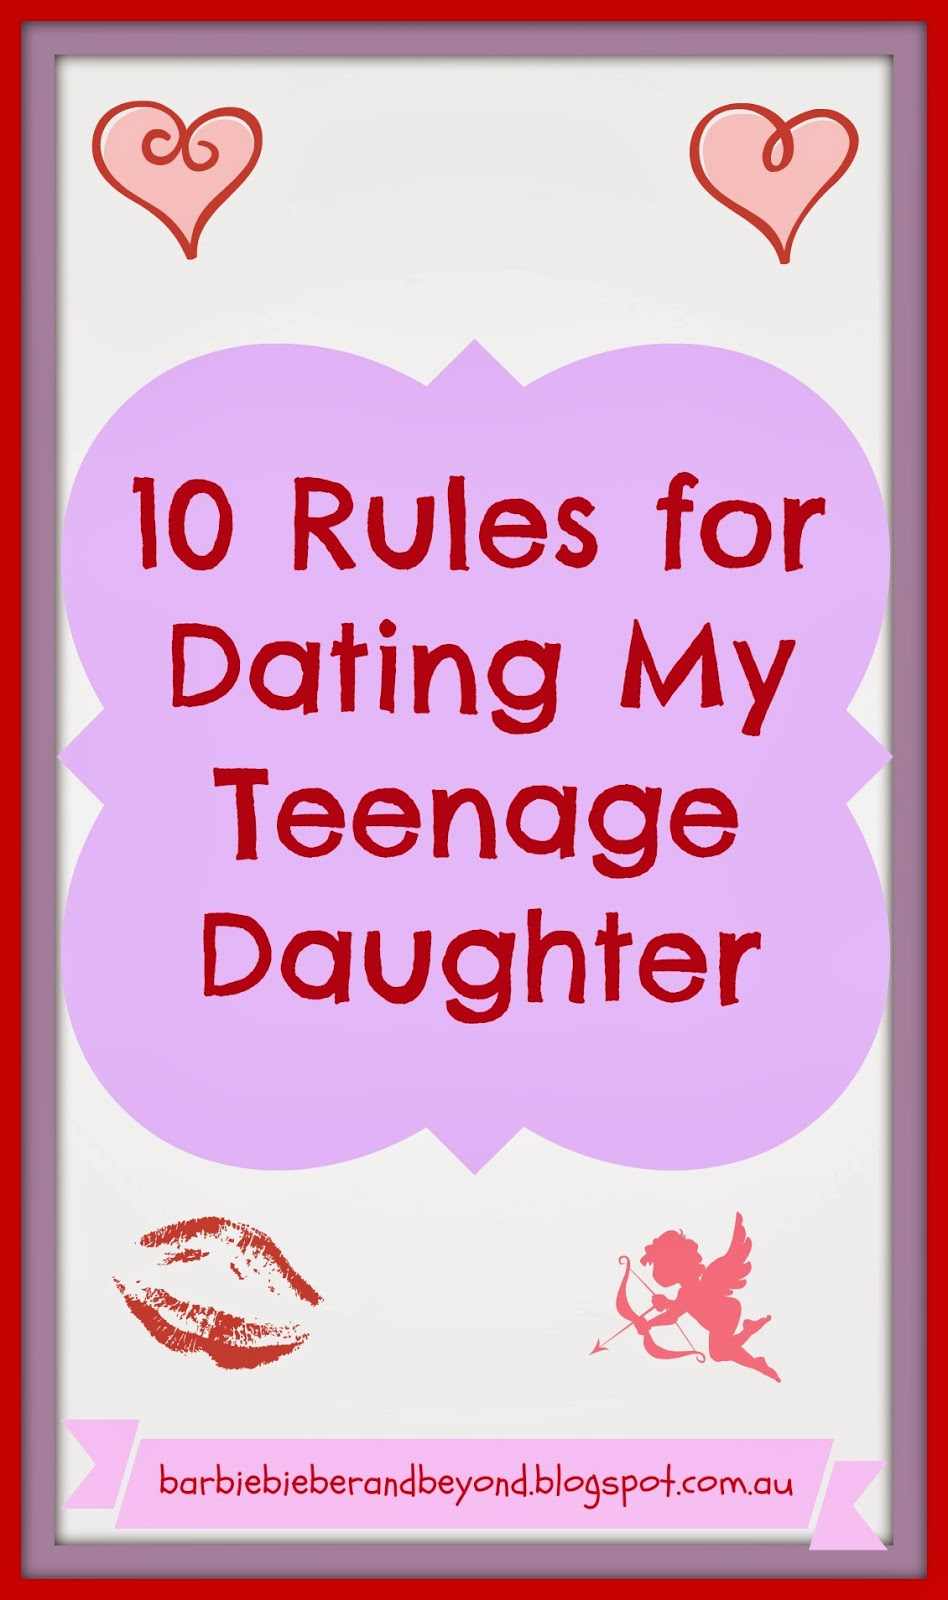 10 rules for dating my daughter funny 10 rules for dating my daughter rule one: if you pull into my driveway and honk you'd better be delivering a package, because you're sure not.